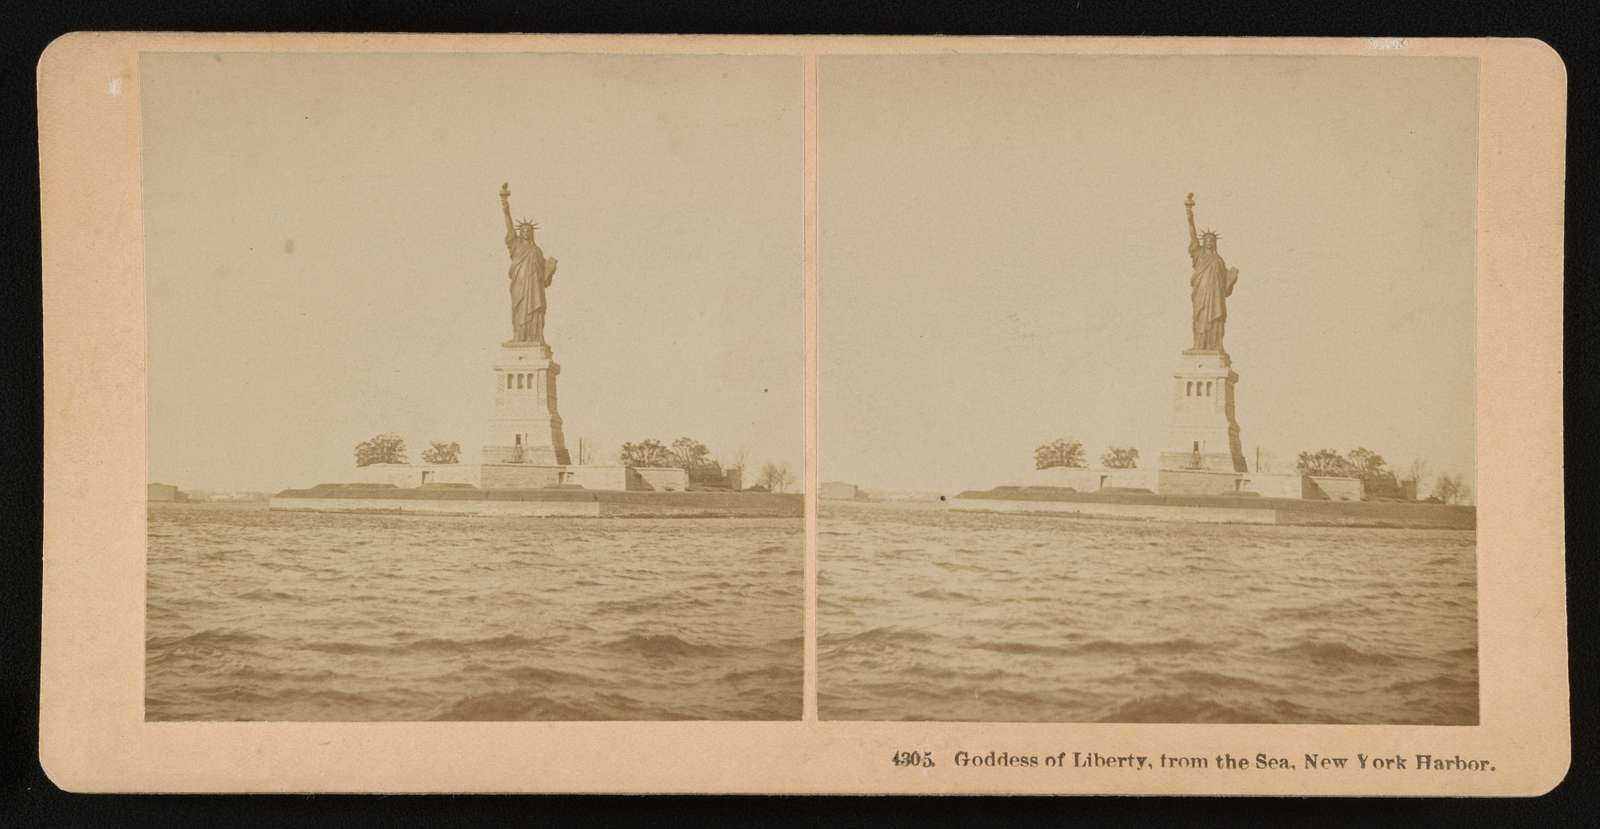 Goddess of Liberty, from the sea, New York Harbor